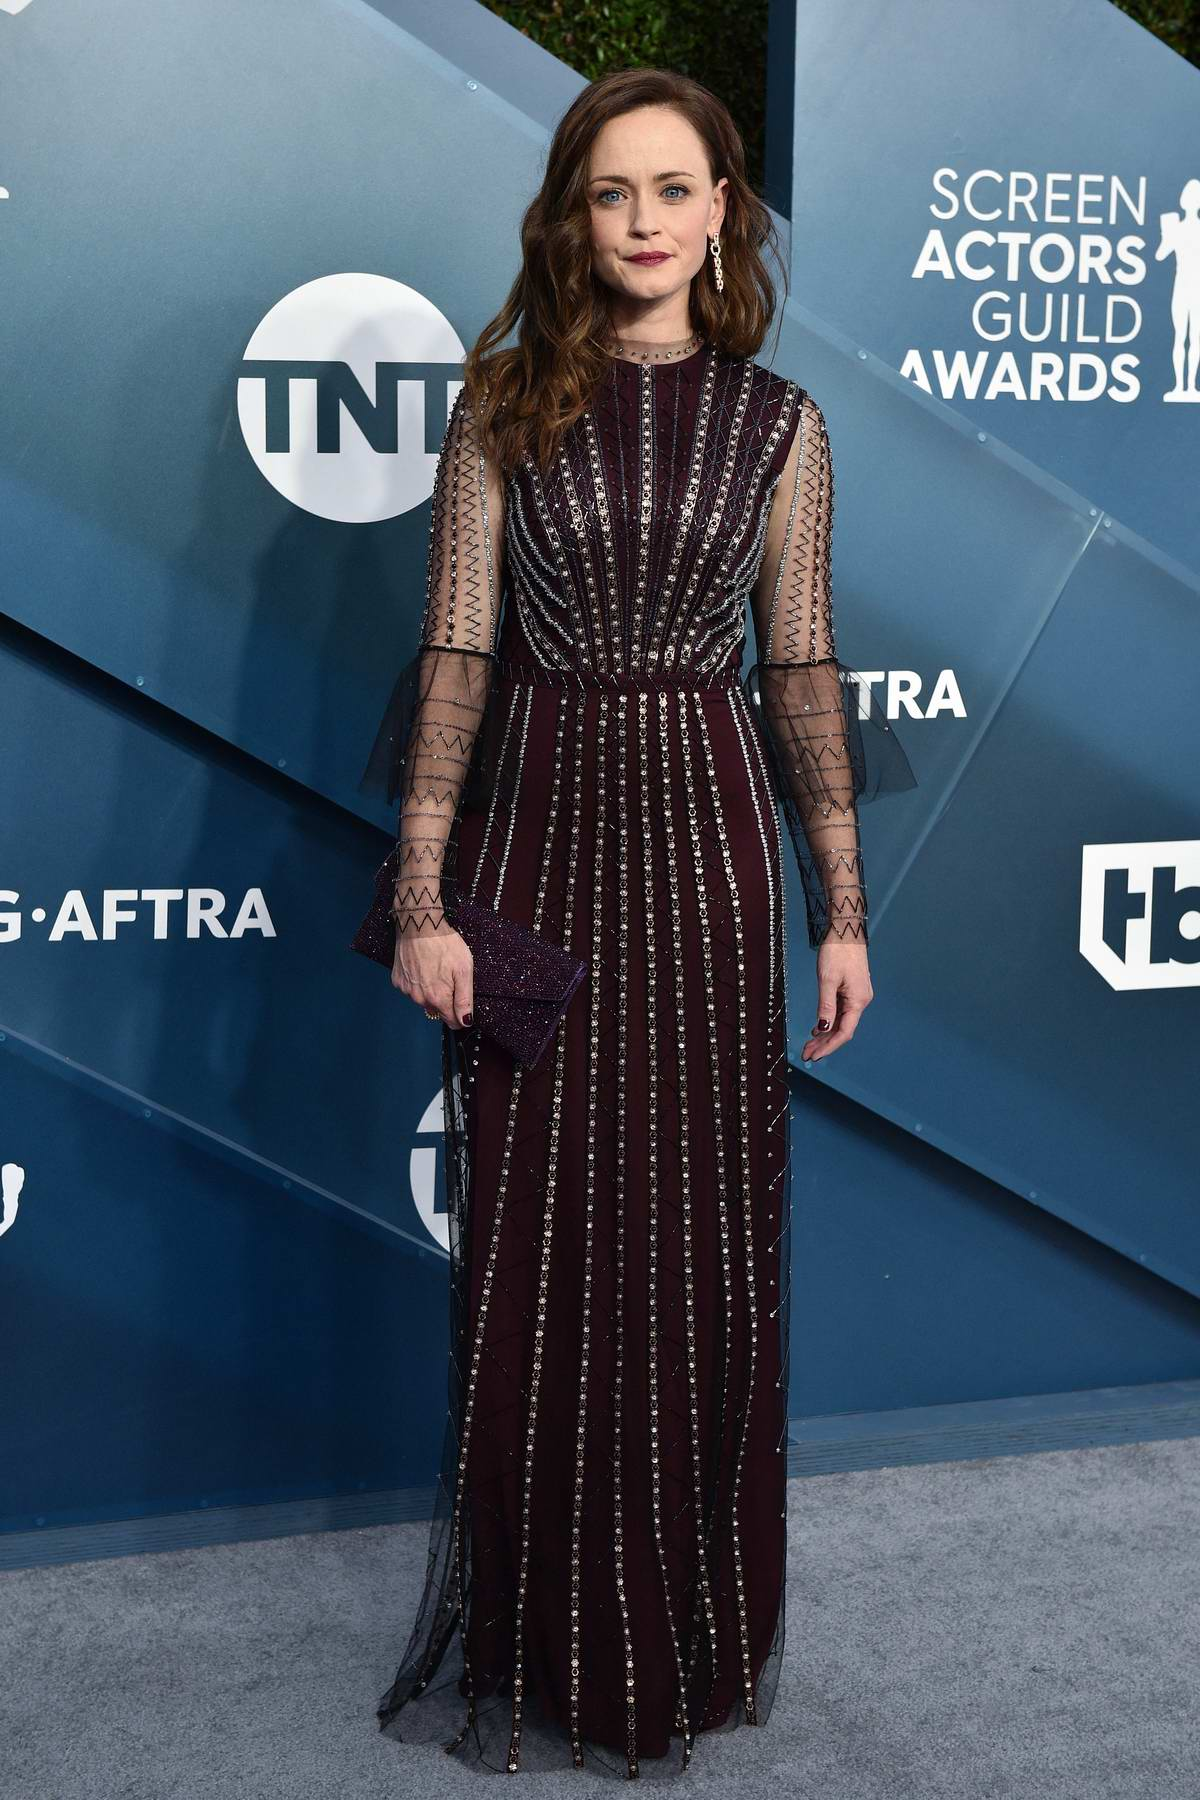 Alexis Bledel attends the 26th Annual Screen Actors Guild Awards at the Shrine Auditorium in Los Angeles